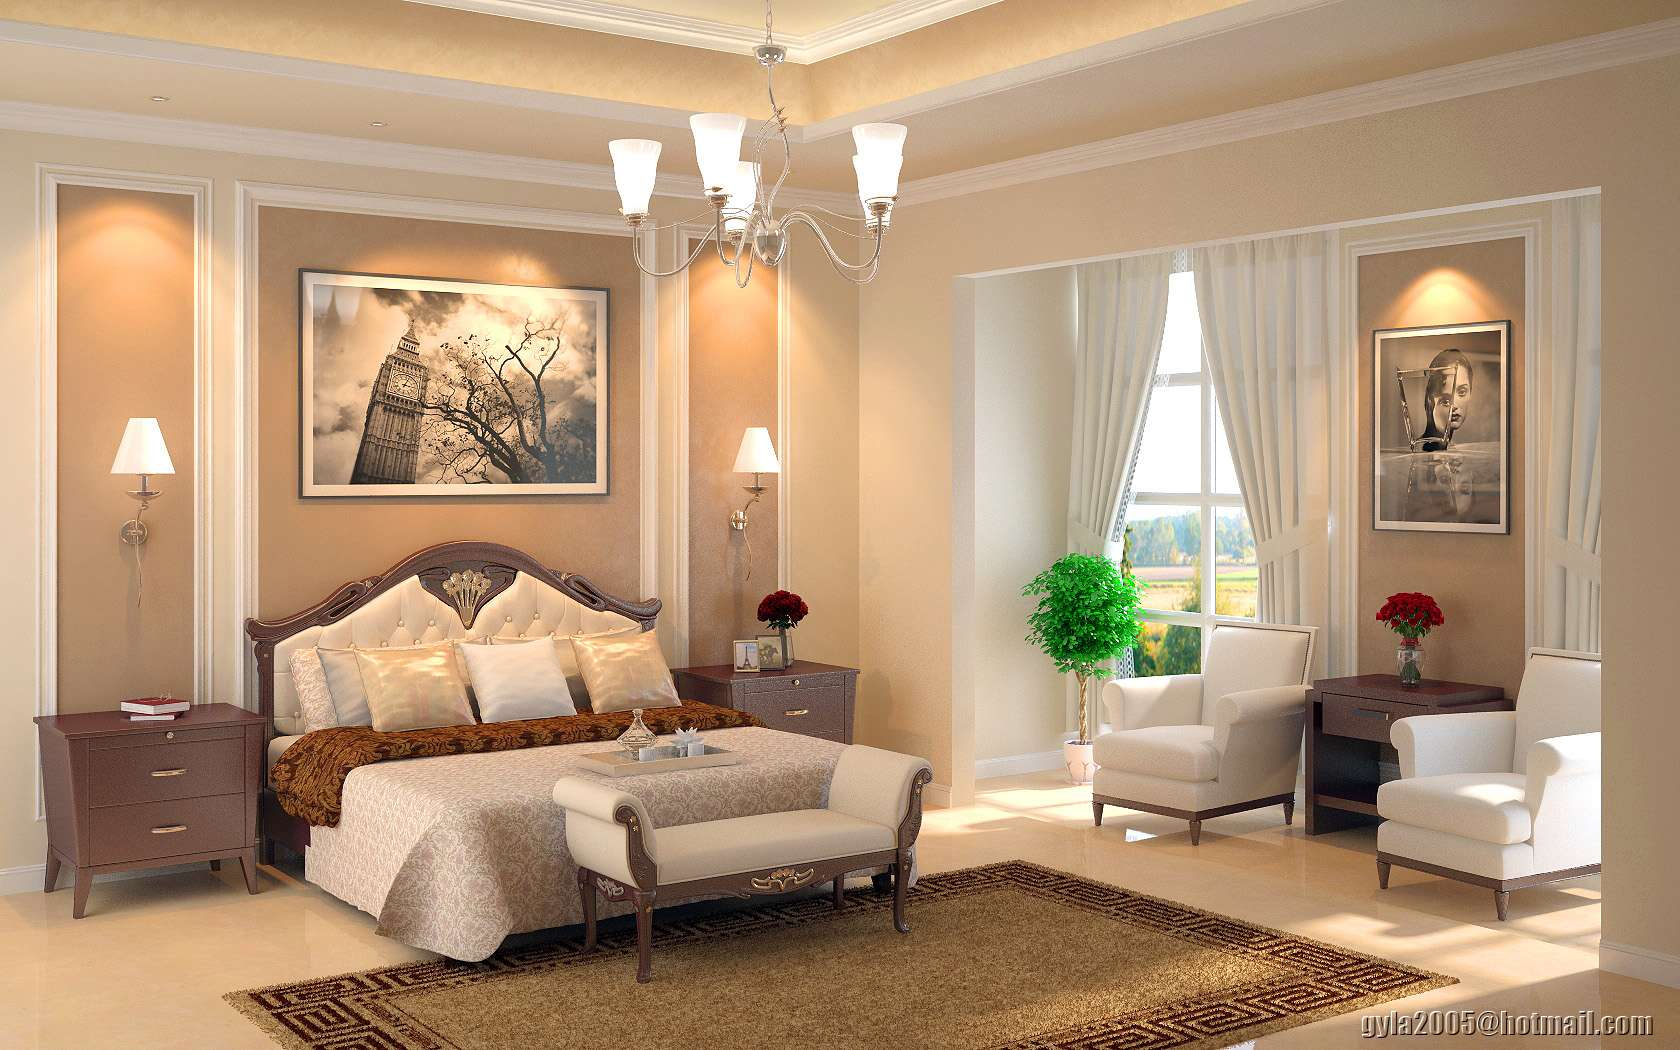 Deviantart Master Bedroom Interior Design Ideas